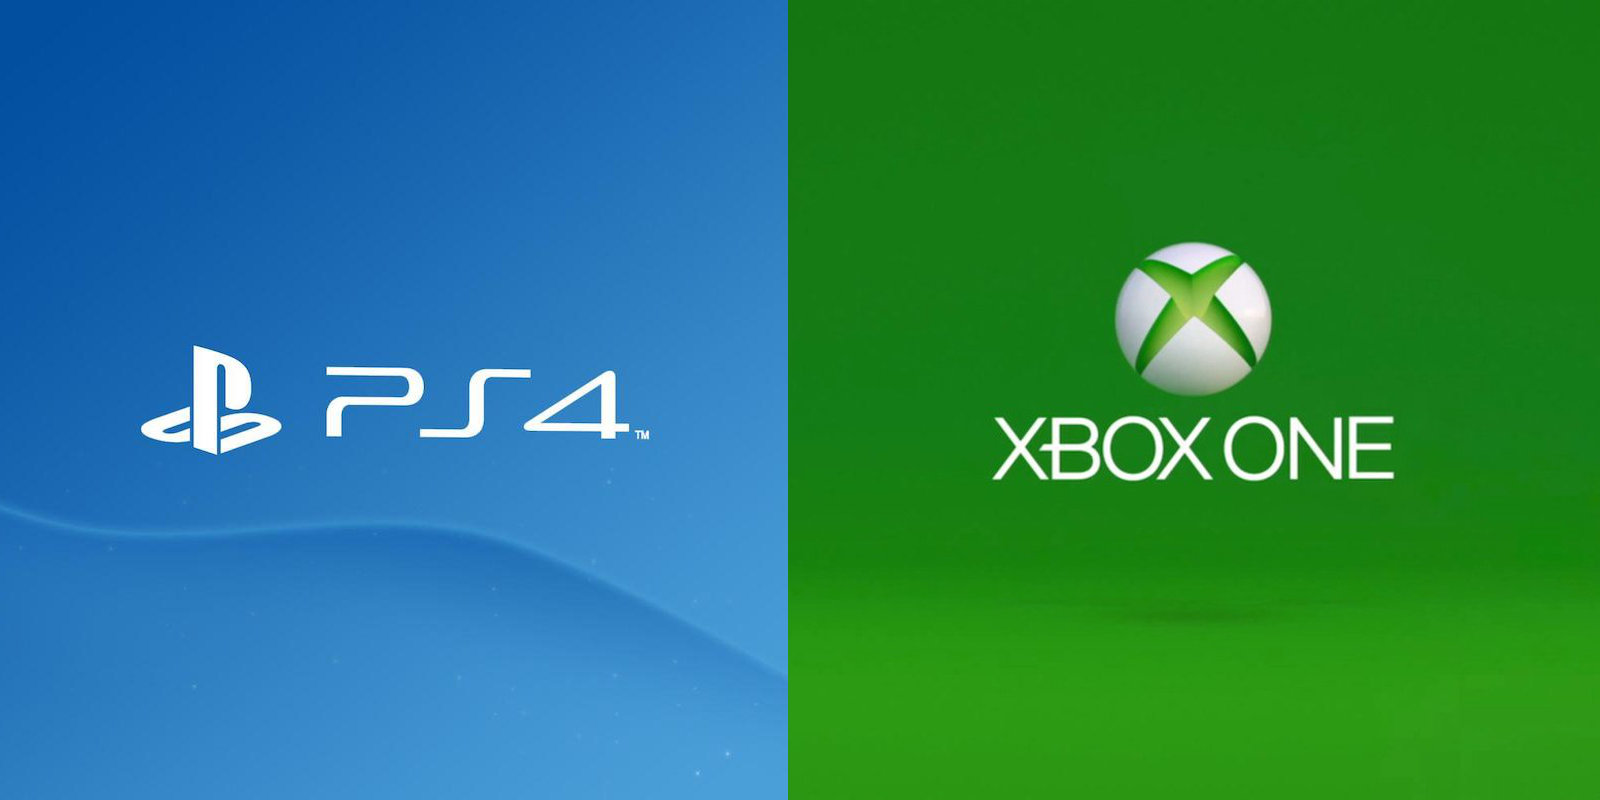 Microsoft and Sony are teaming up for new cloud-based gaming services + more